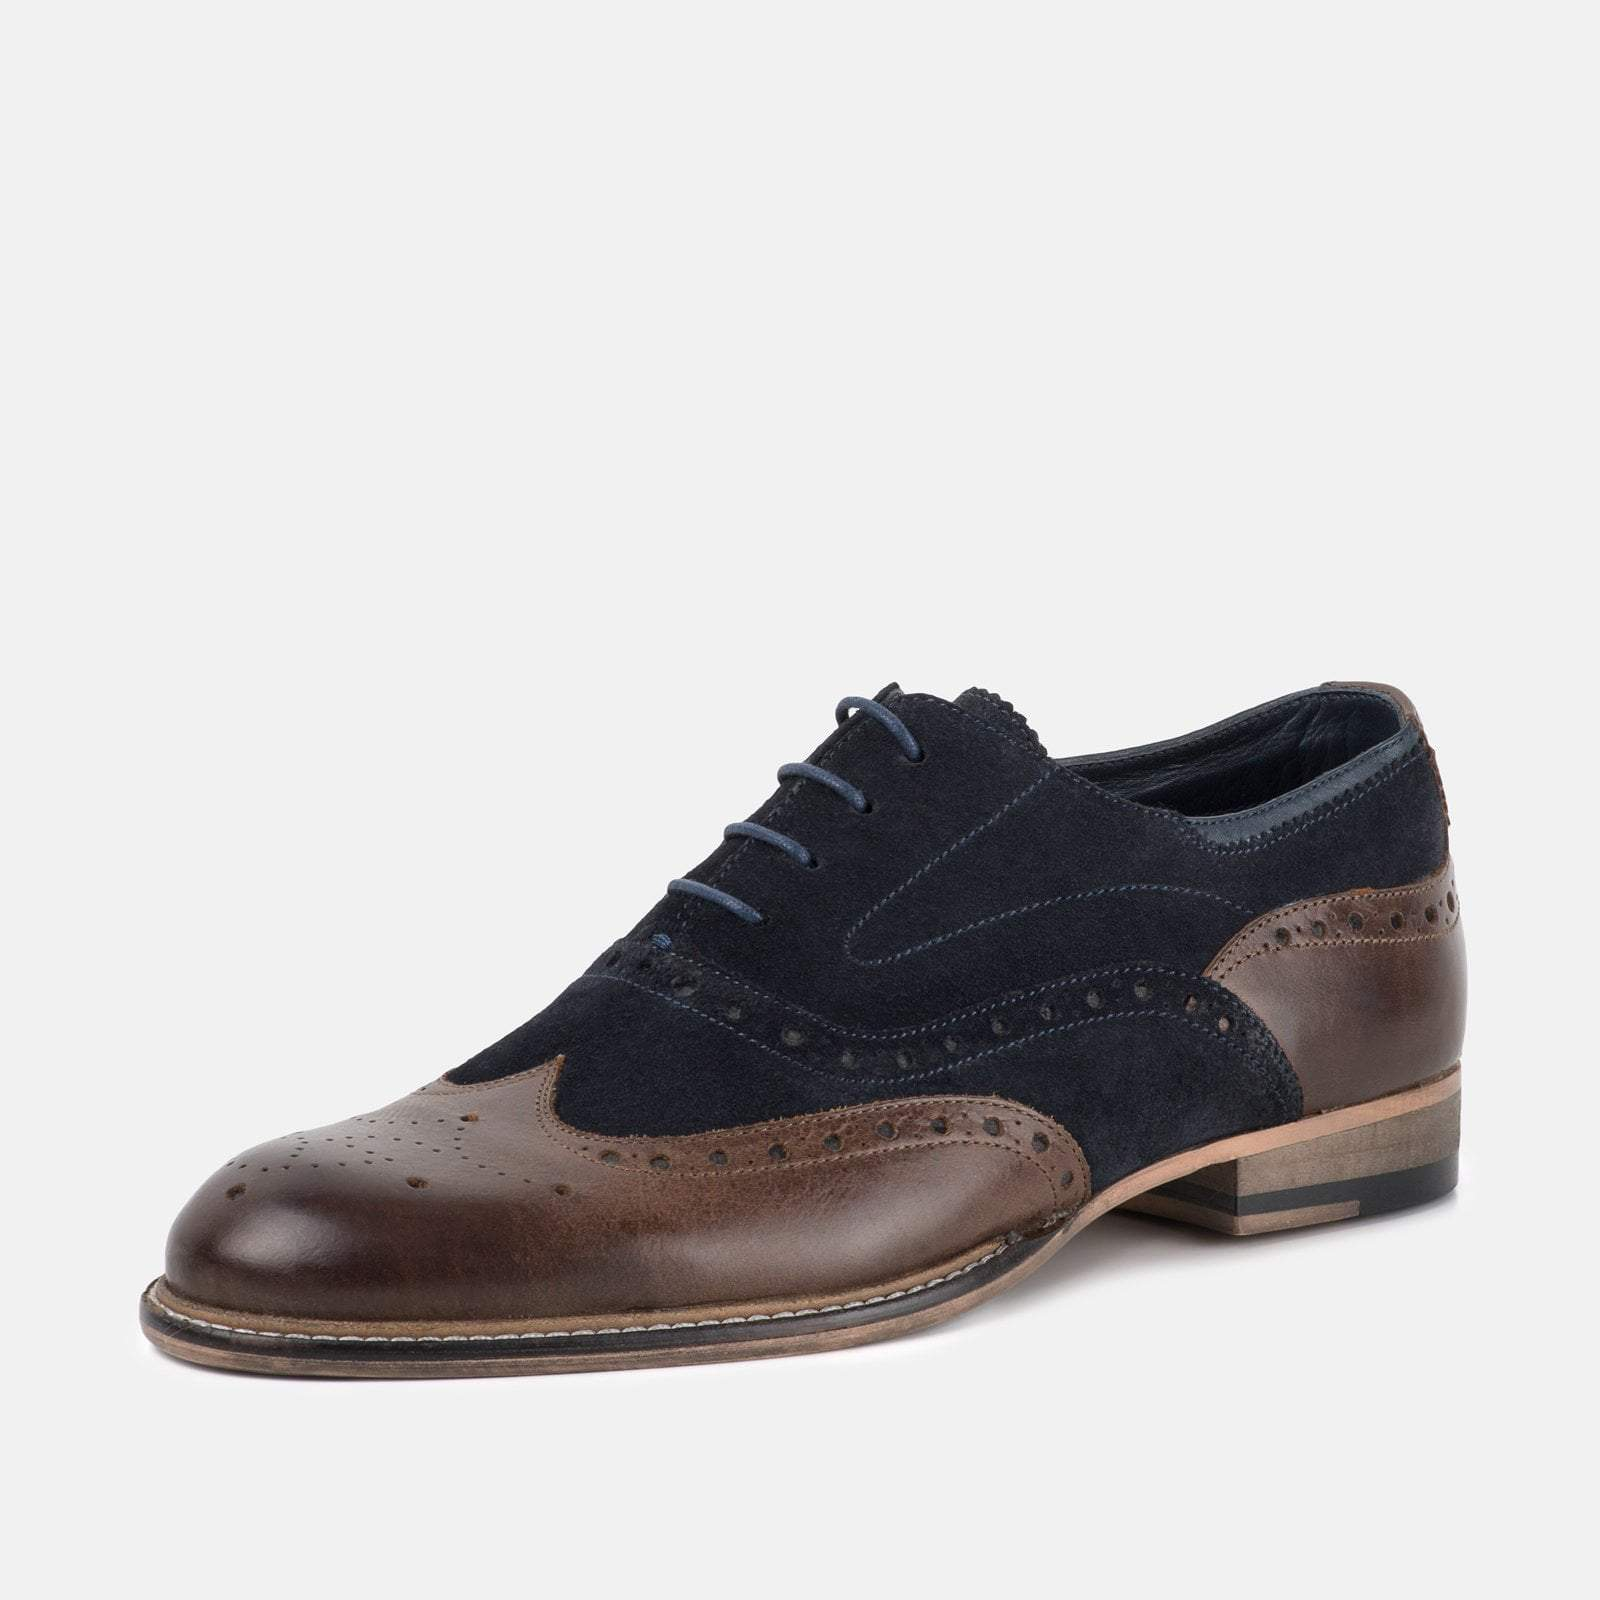 Goodwin Smith Footwear UK 6 / EURO 39 / US 7 / Navy / Leather DARWEN NAVY & BROWN